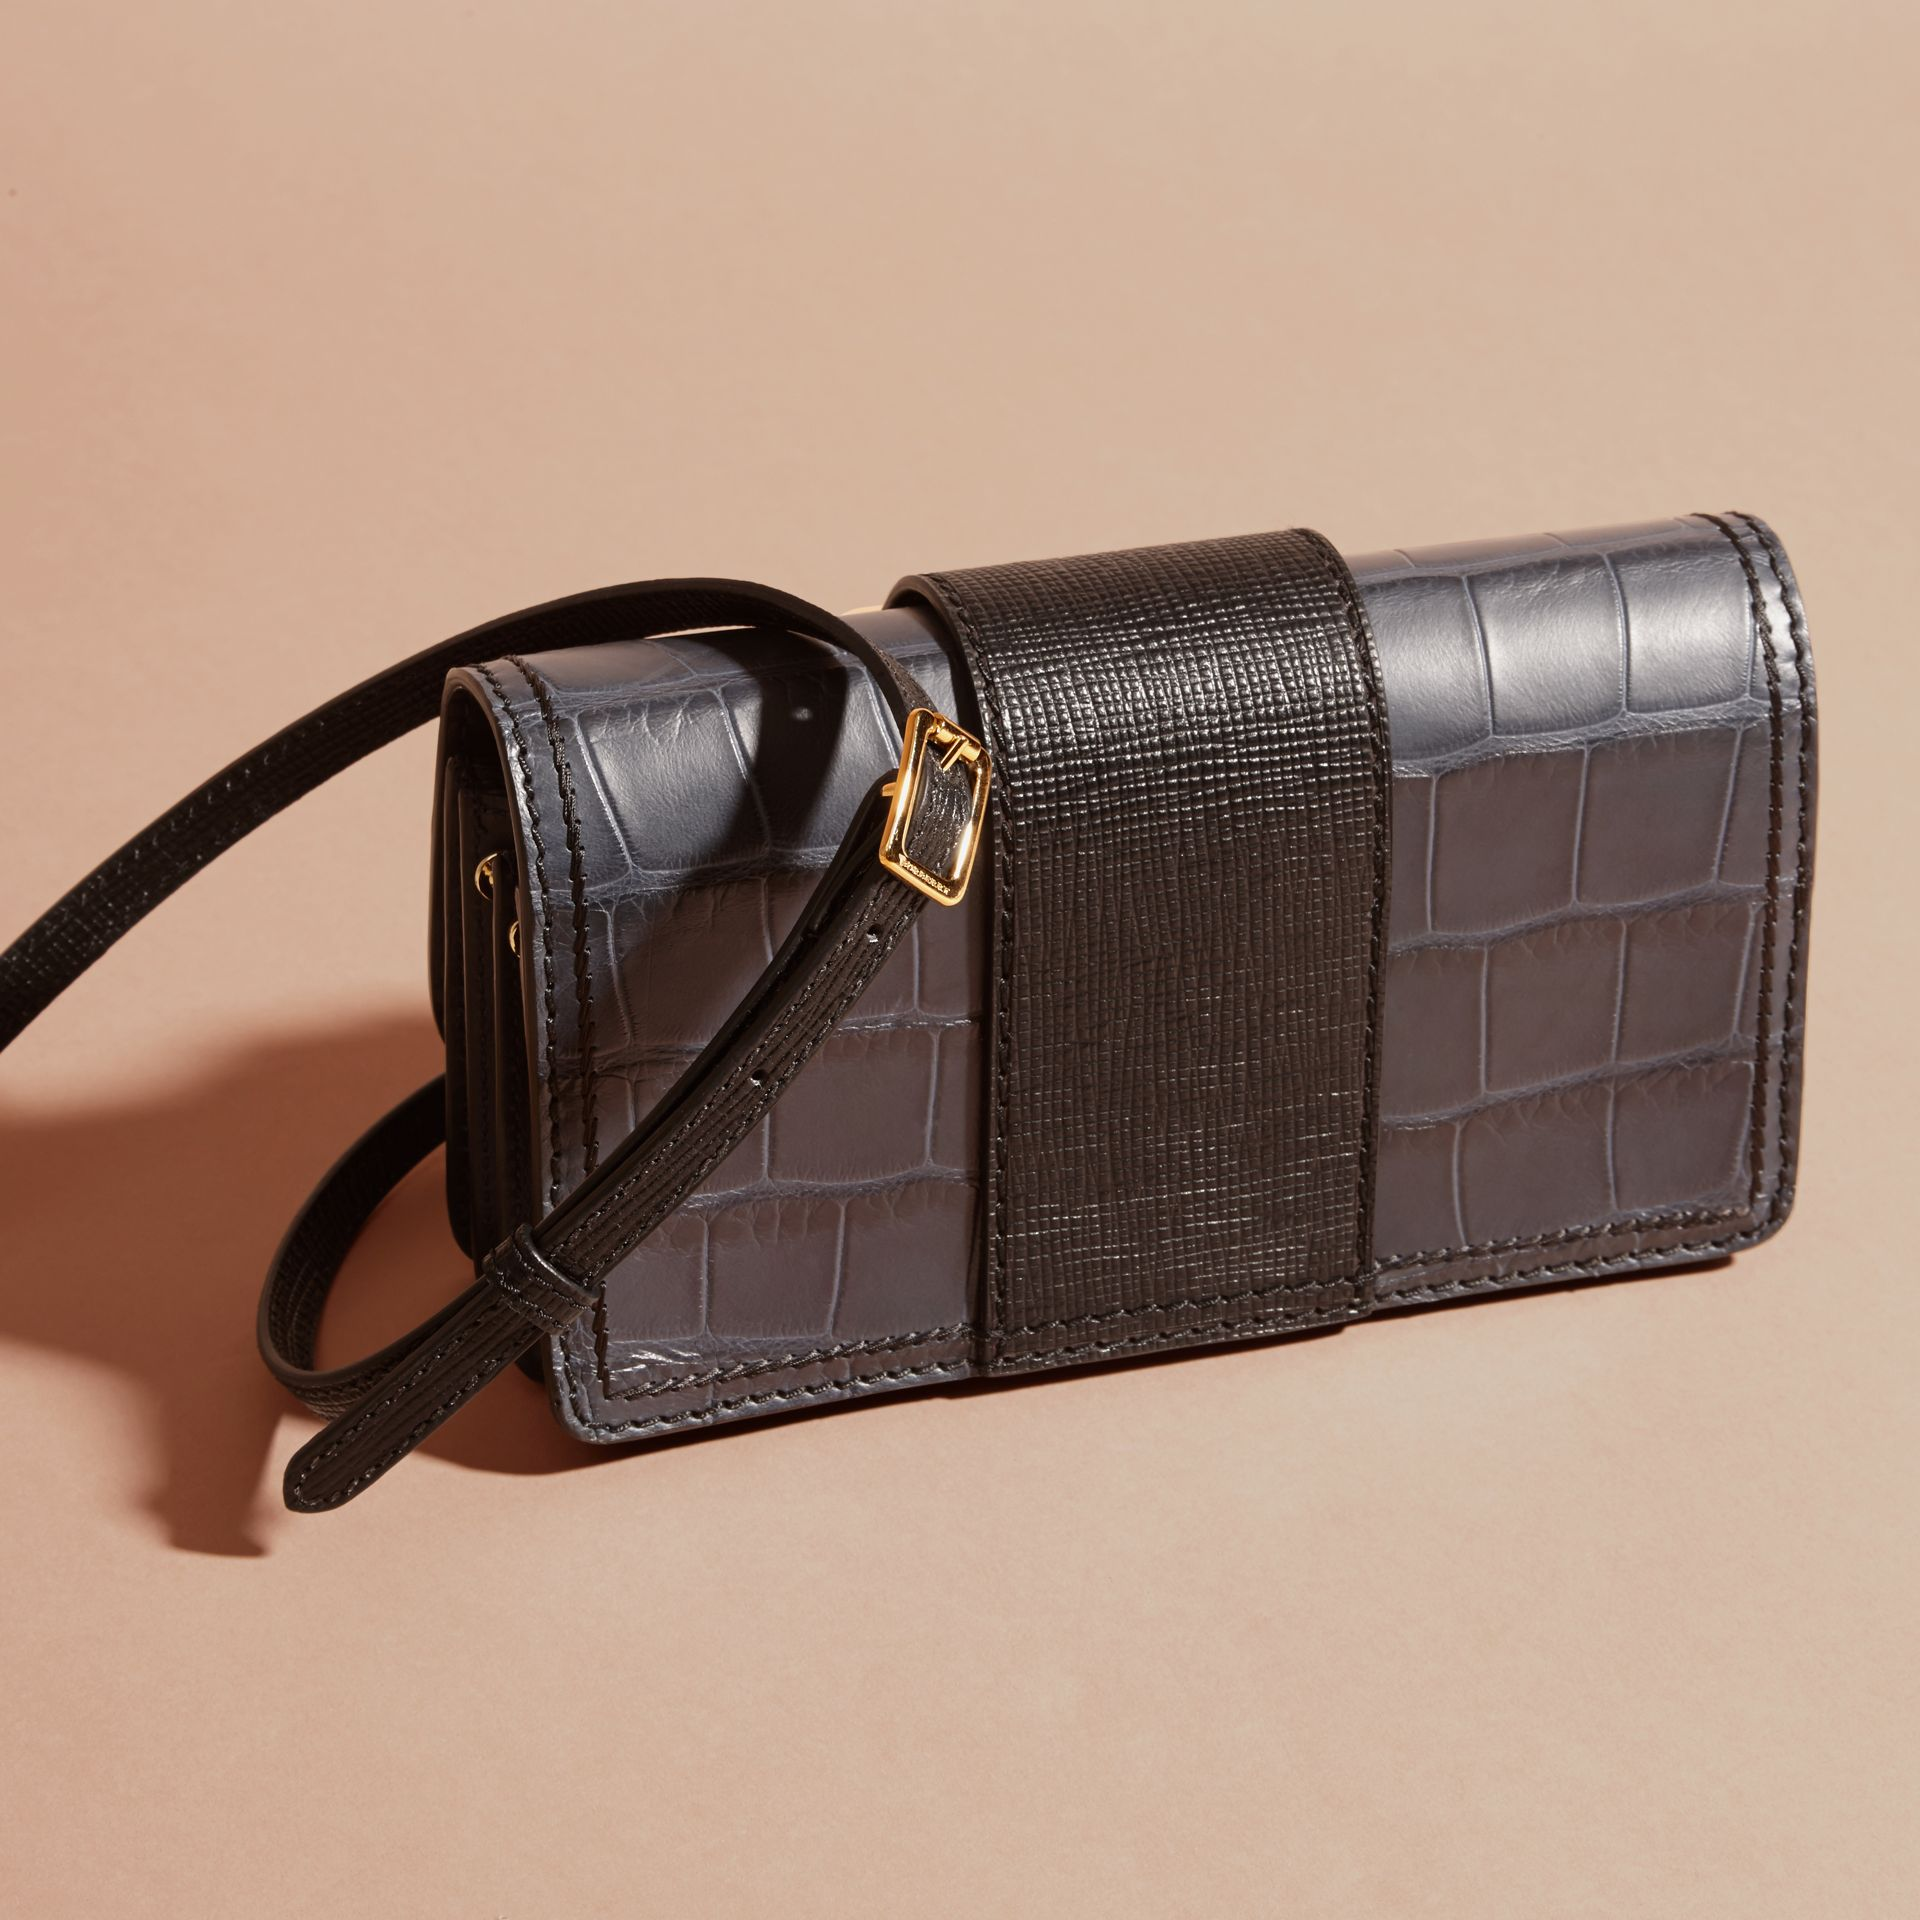 The Small Buckle Bag aus Alligatorleder und Leder (Marineblau/schwarz) - Damen | Burberry - Galerie-Bild 5